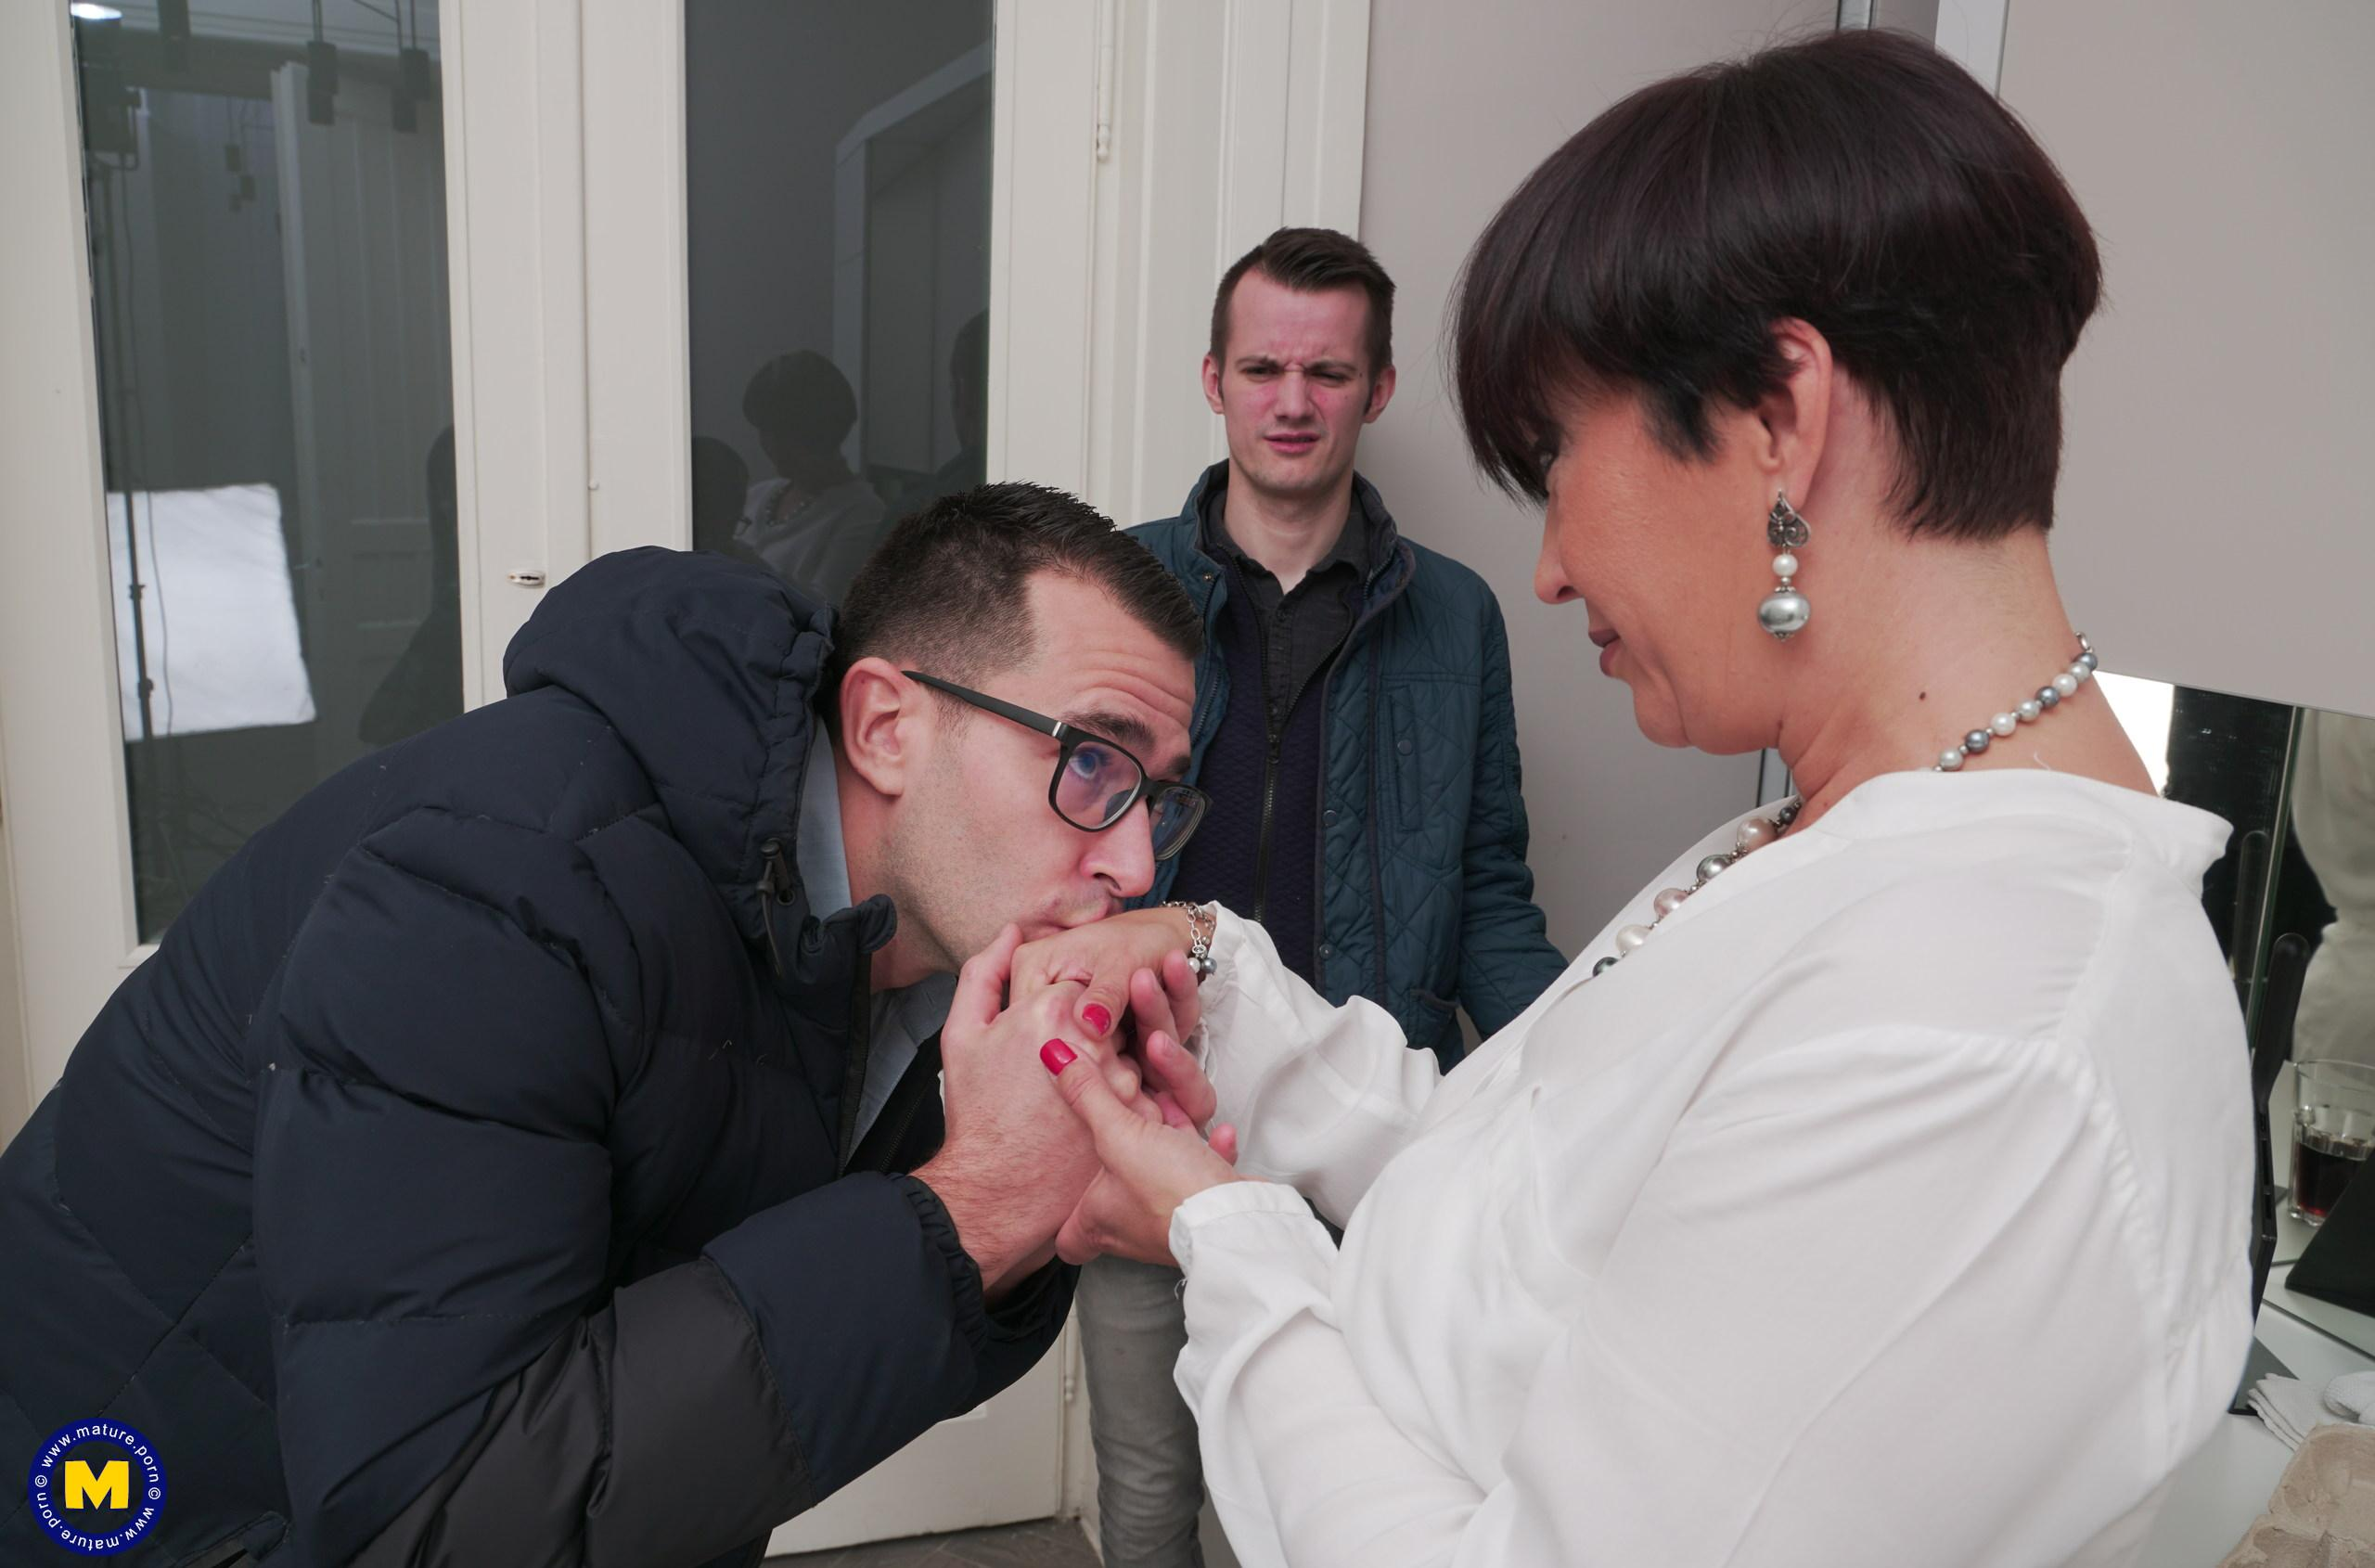 Little unofficial anal gangbang with granny finance director before she retires. picture 2